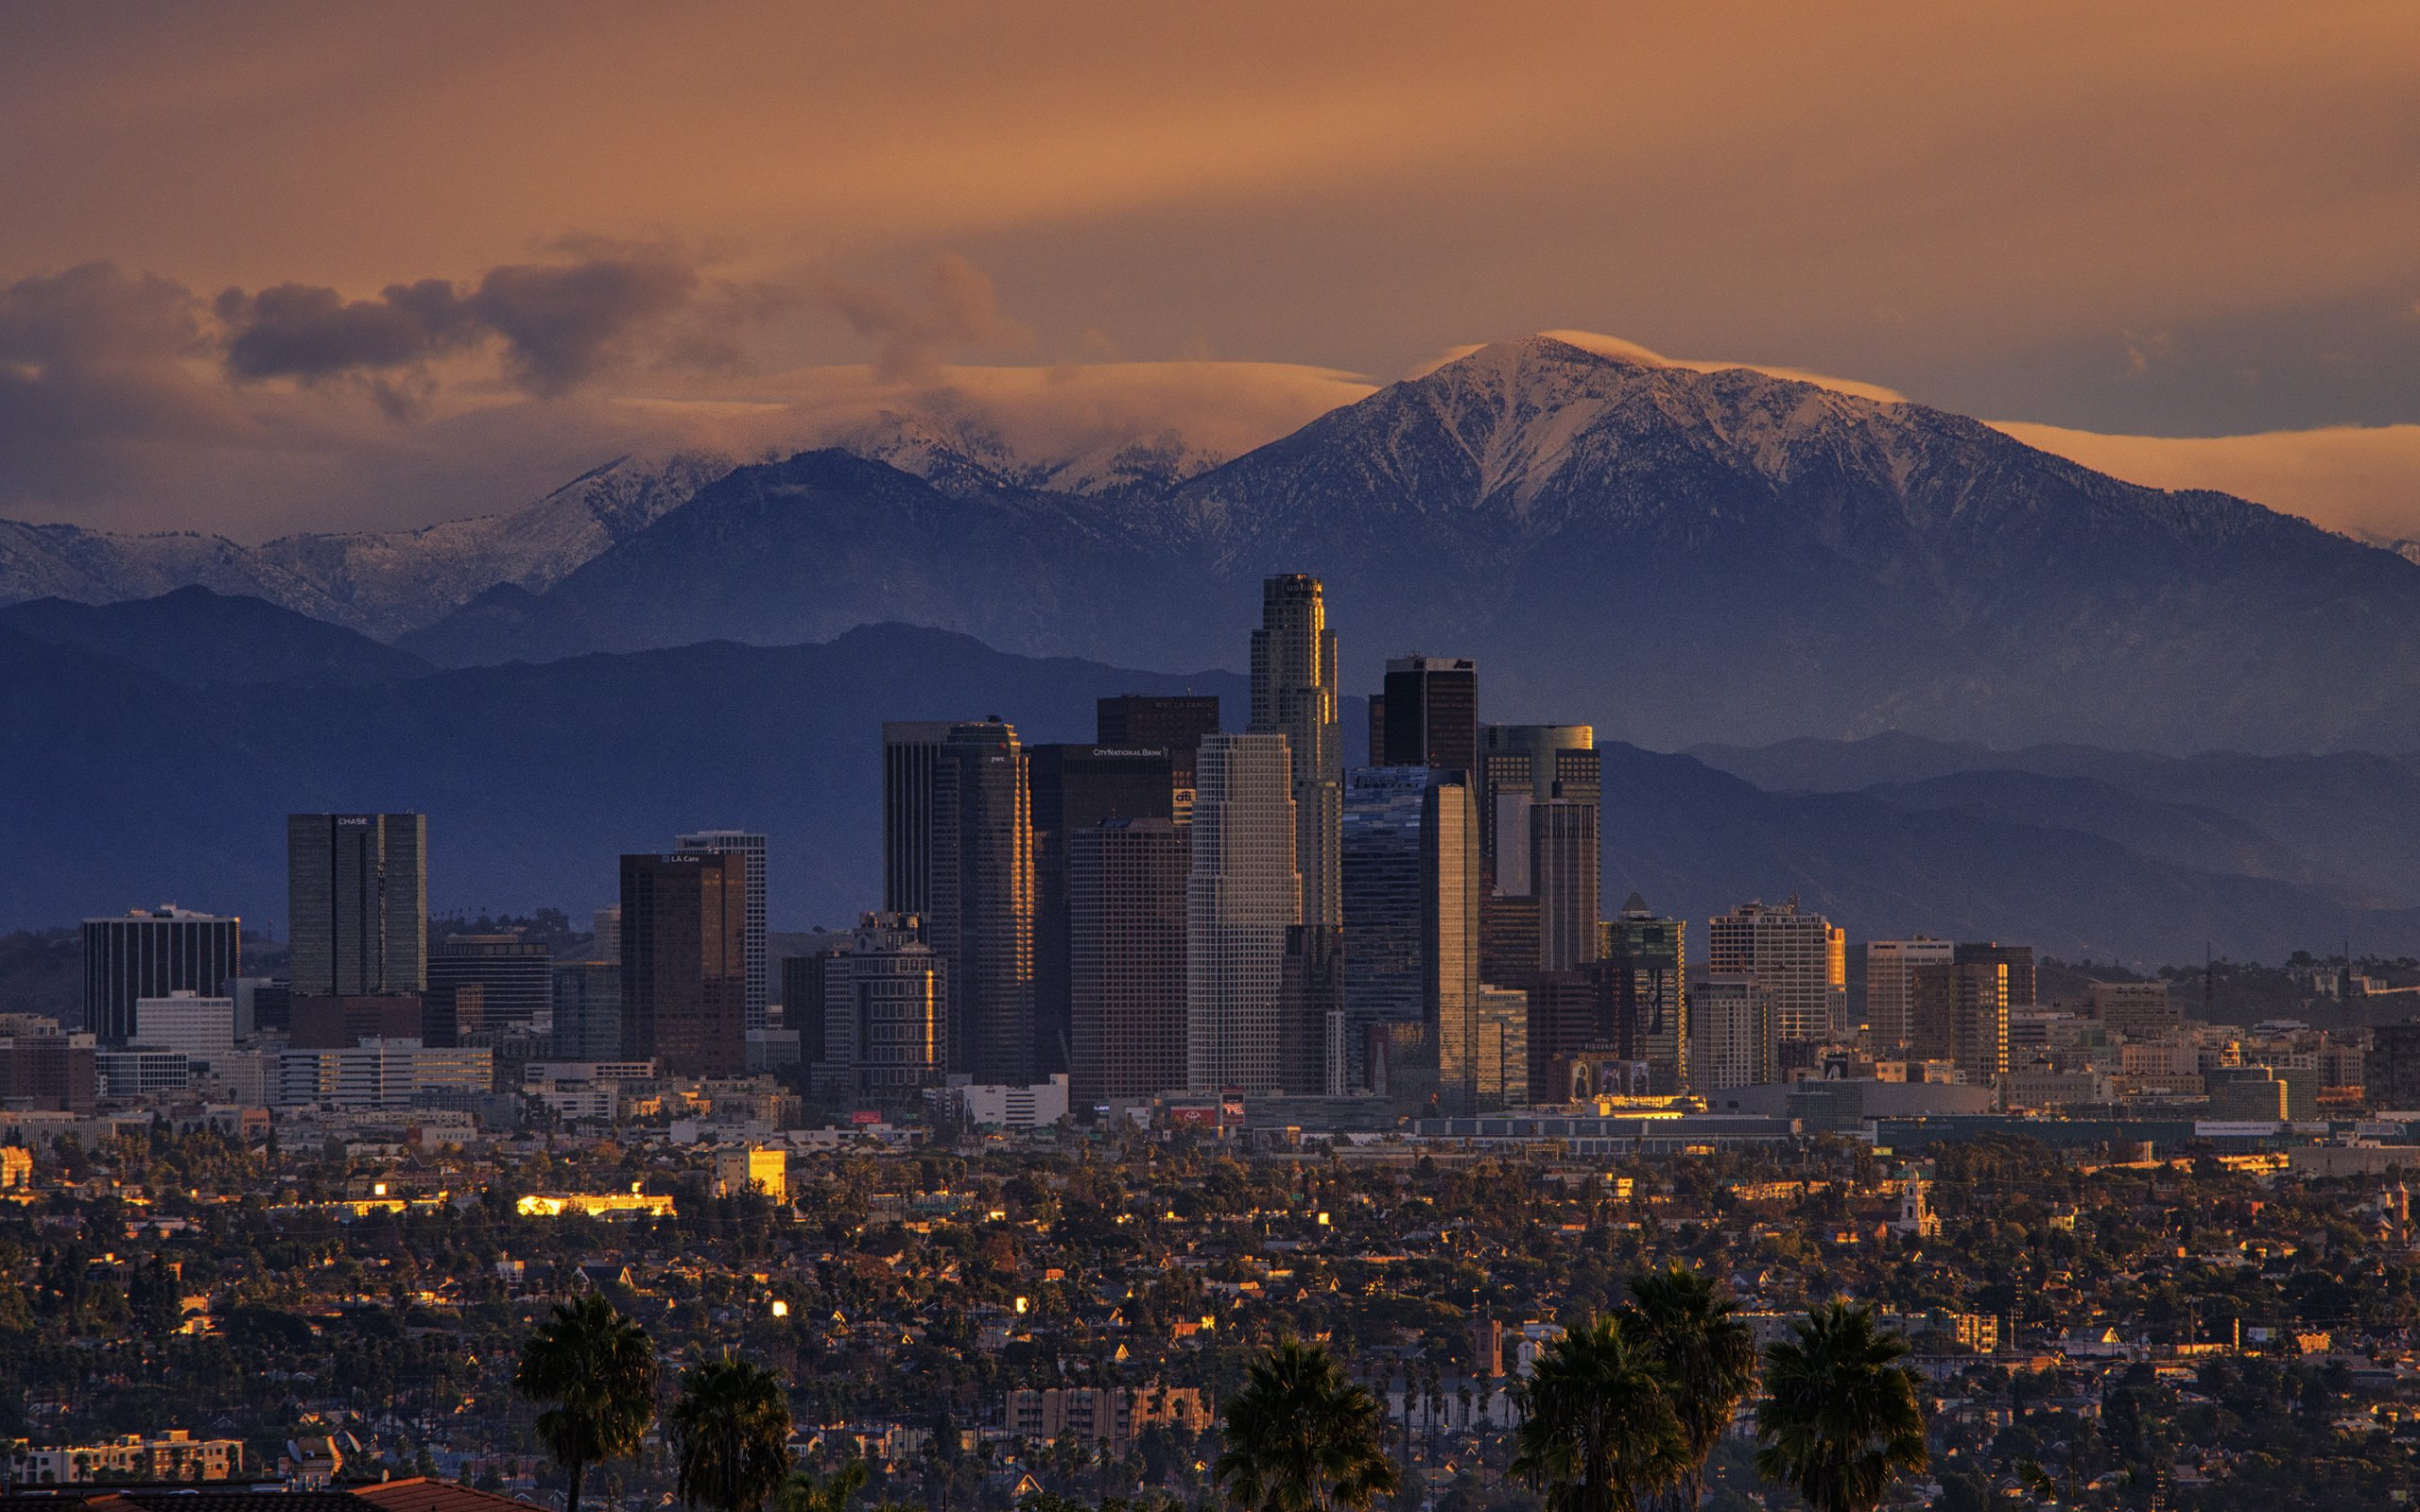 Los Angeles Wallpaper Iphone 6 Plus City Full Hd Wallpaper And Background 2560x1600 Id 546179